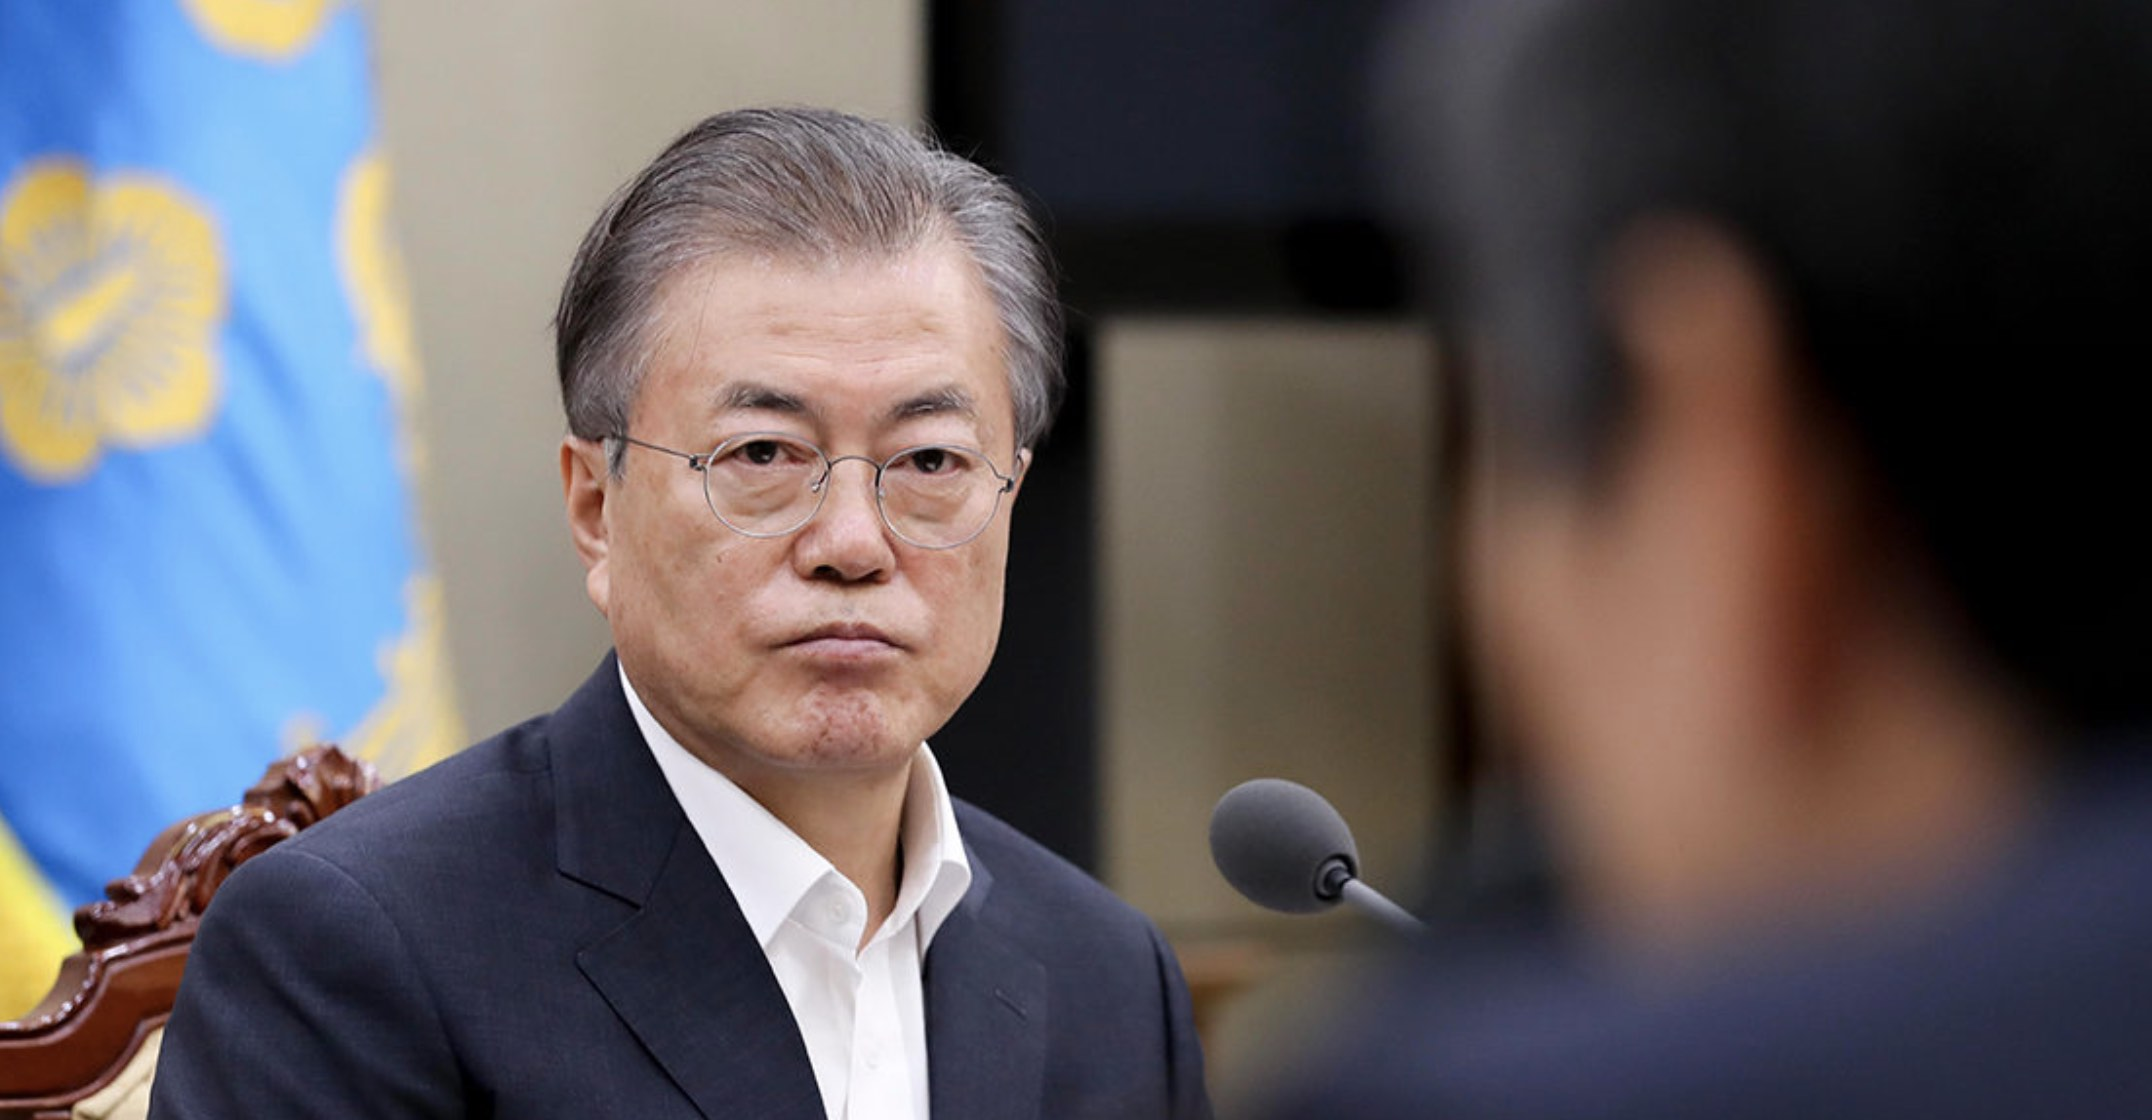 Moon Jae-in, Corea del Sur